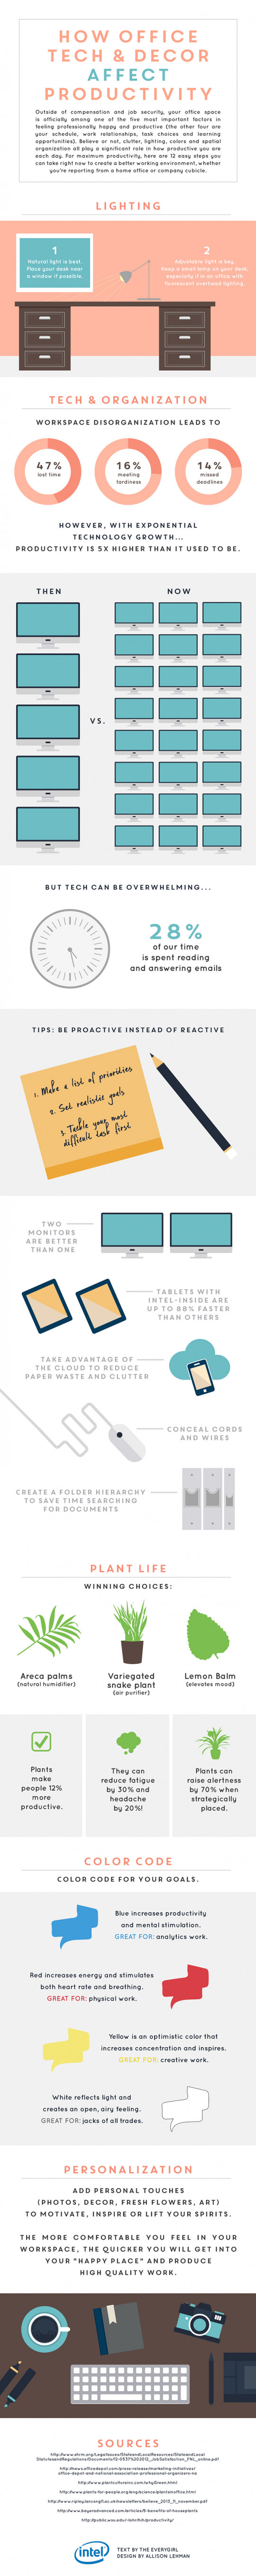 How Office Decor Affects Productivity